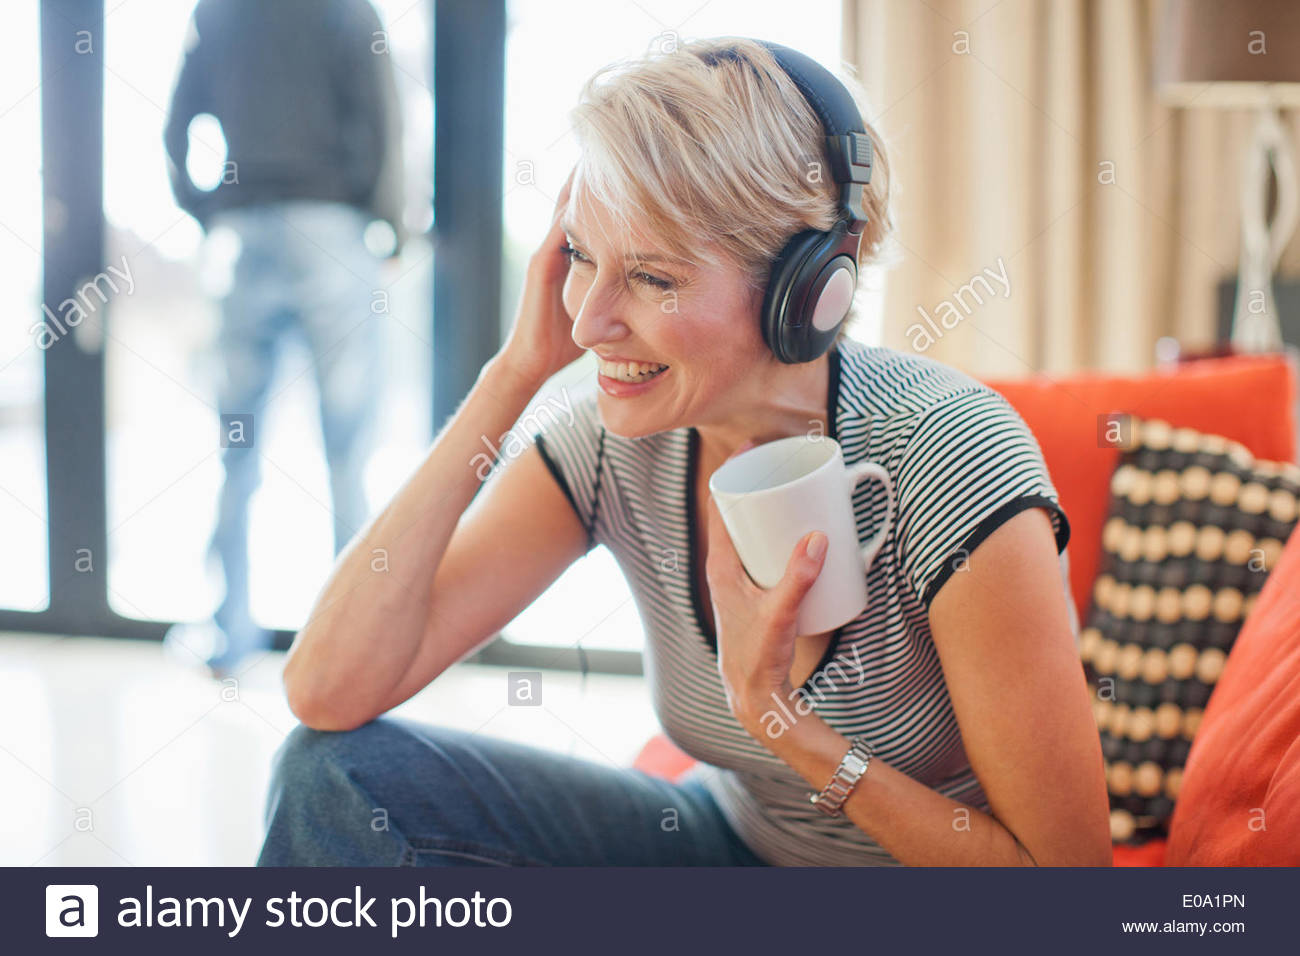 Woman drinking coffee and listening to headphones - Stock Image